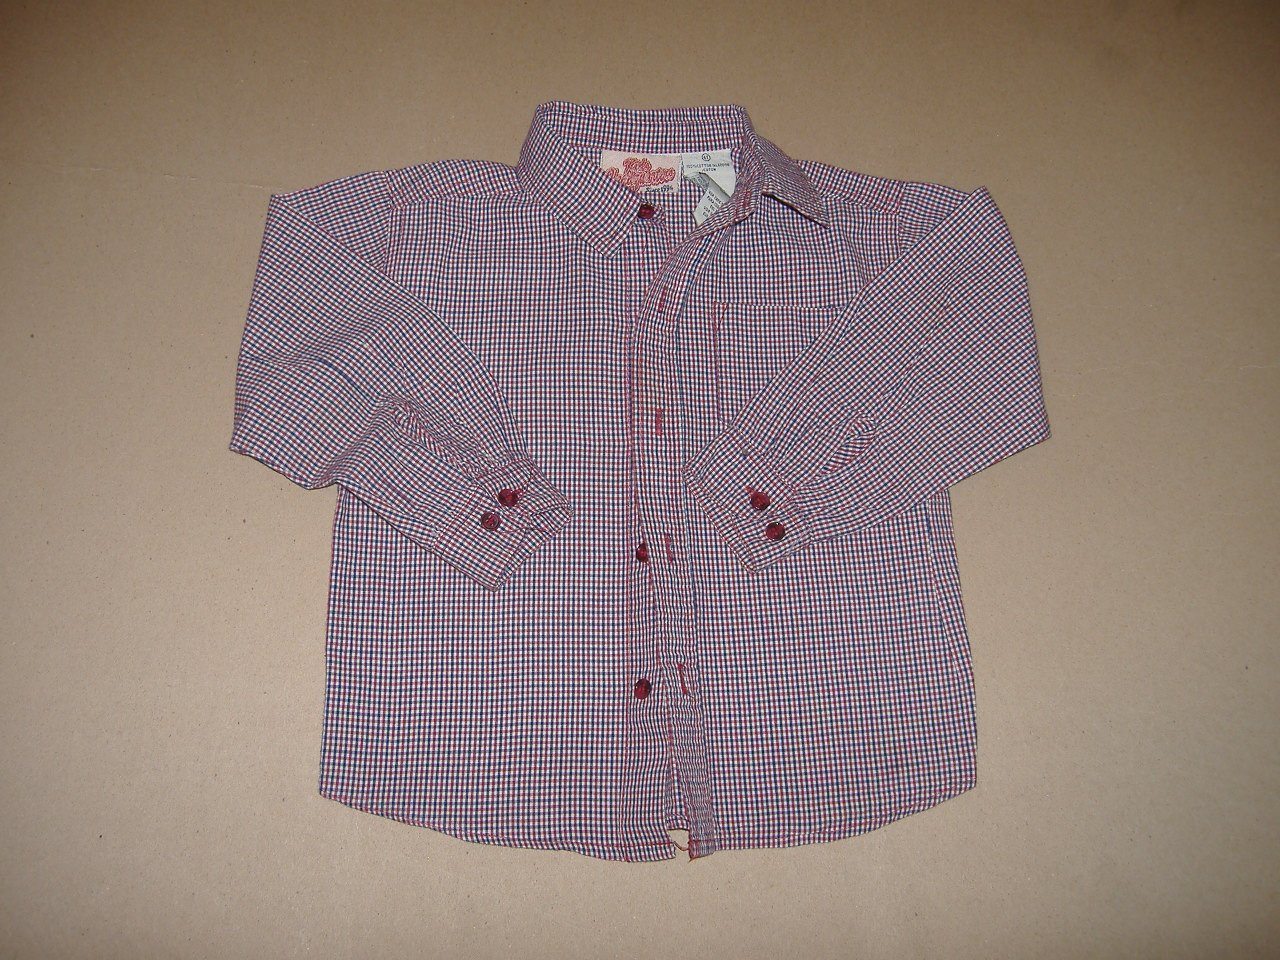 Kids Headquarters Boy's Long Sleeve Shirt   Size 4T